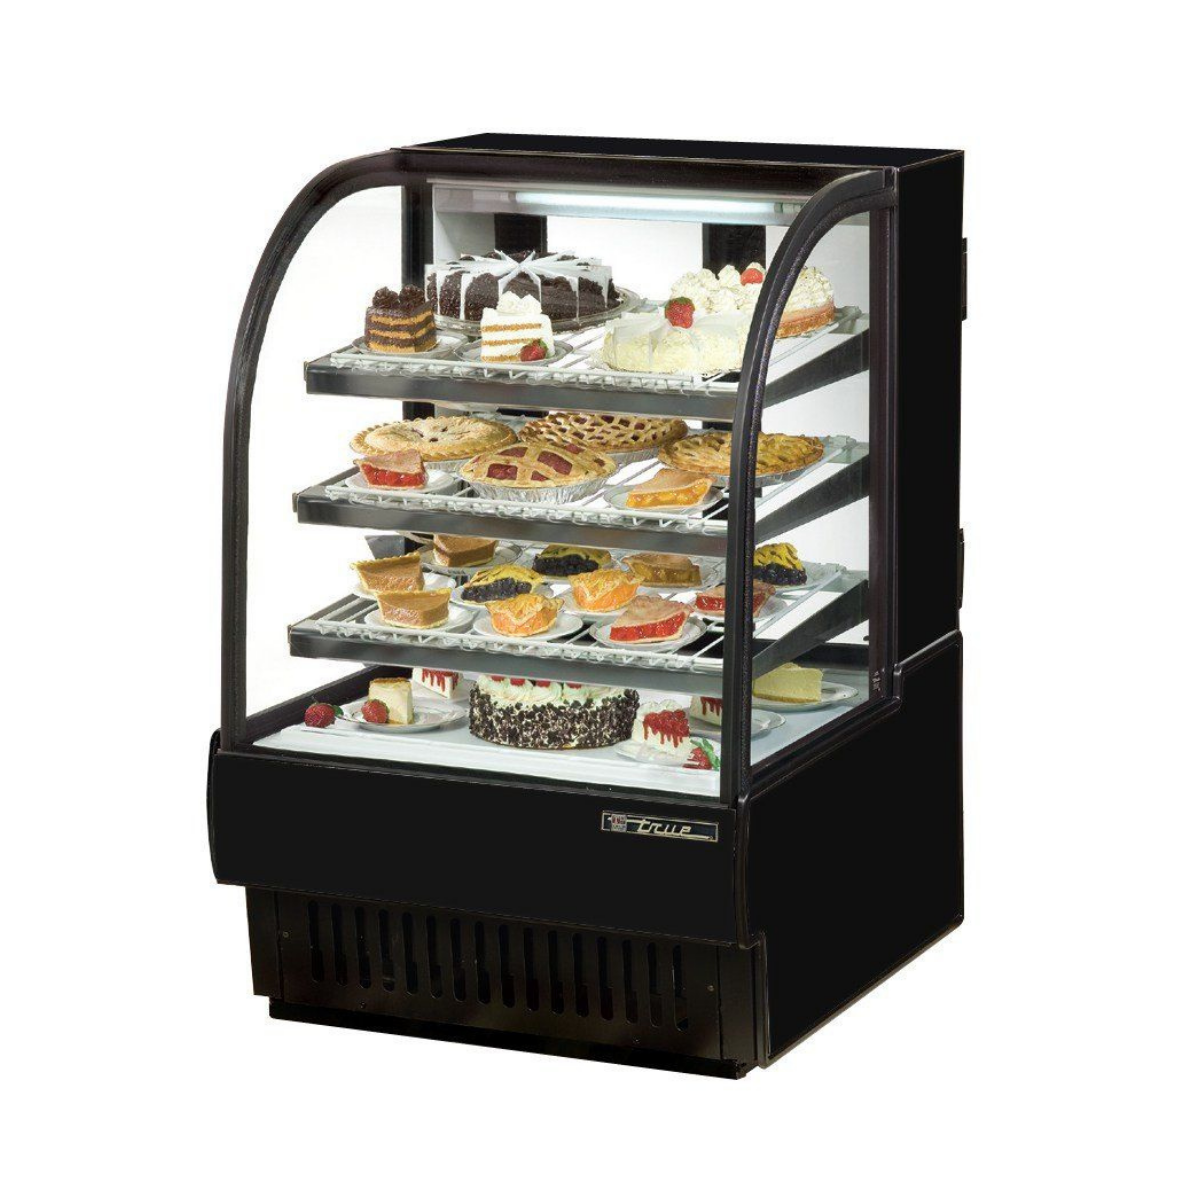 True TCGR-31 Refrigerated Curved Glass Bakery Case